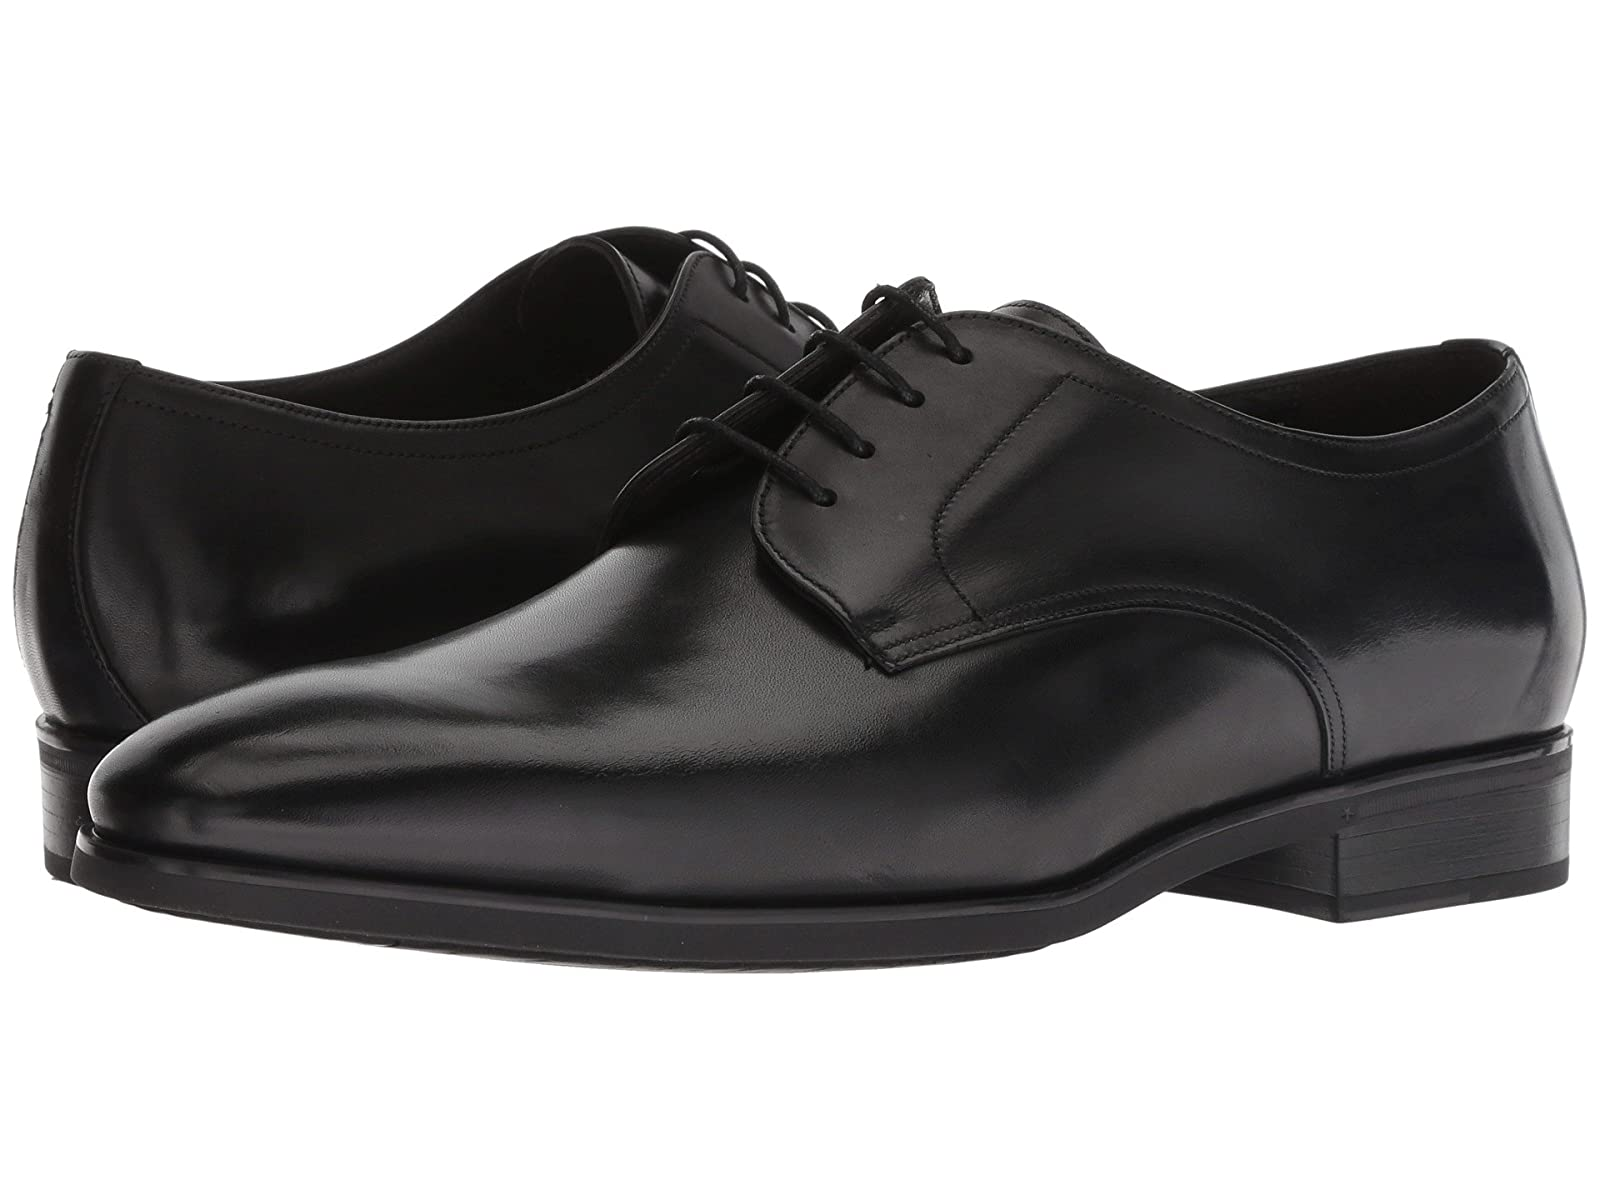 To Boot New York DwightAtmospheric grades have affordable shoes